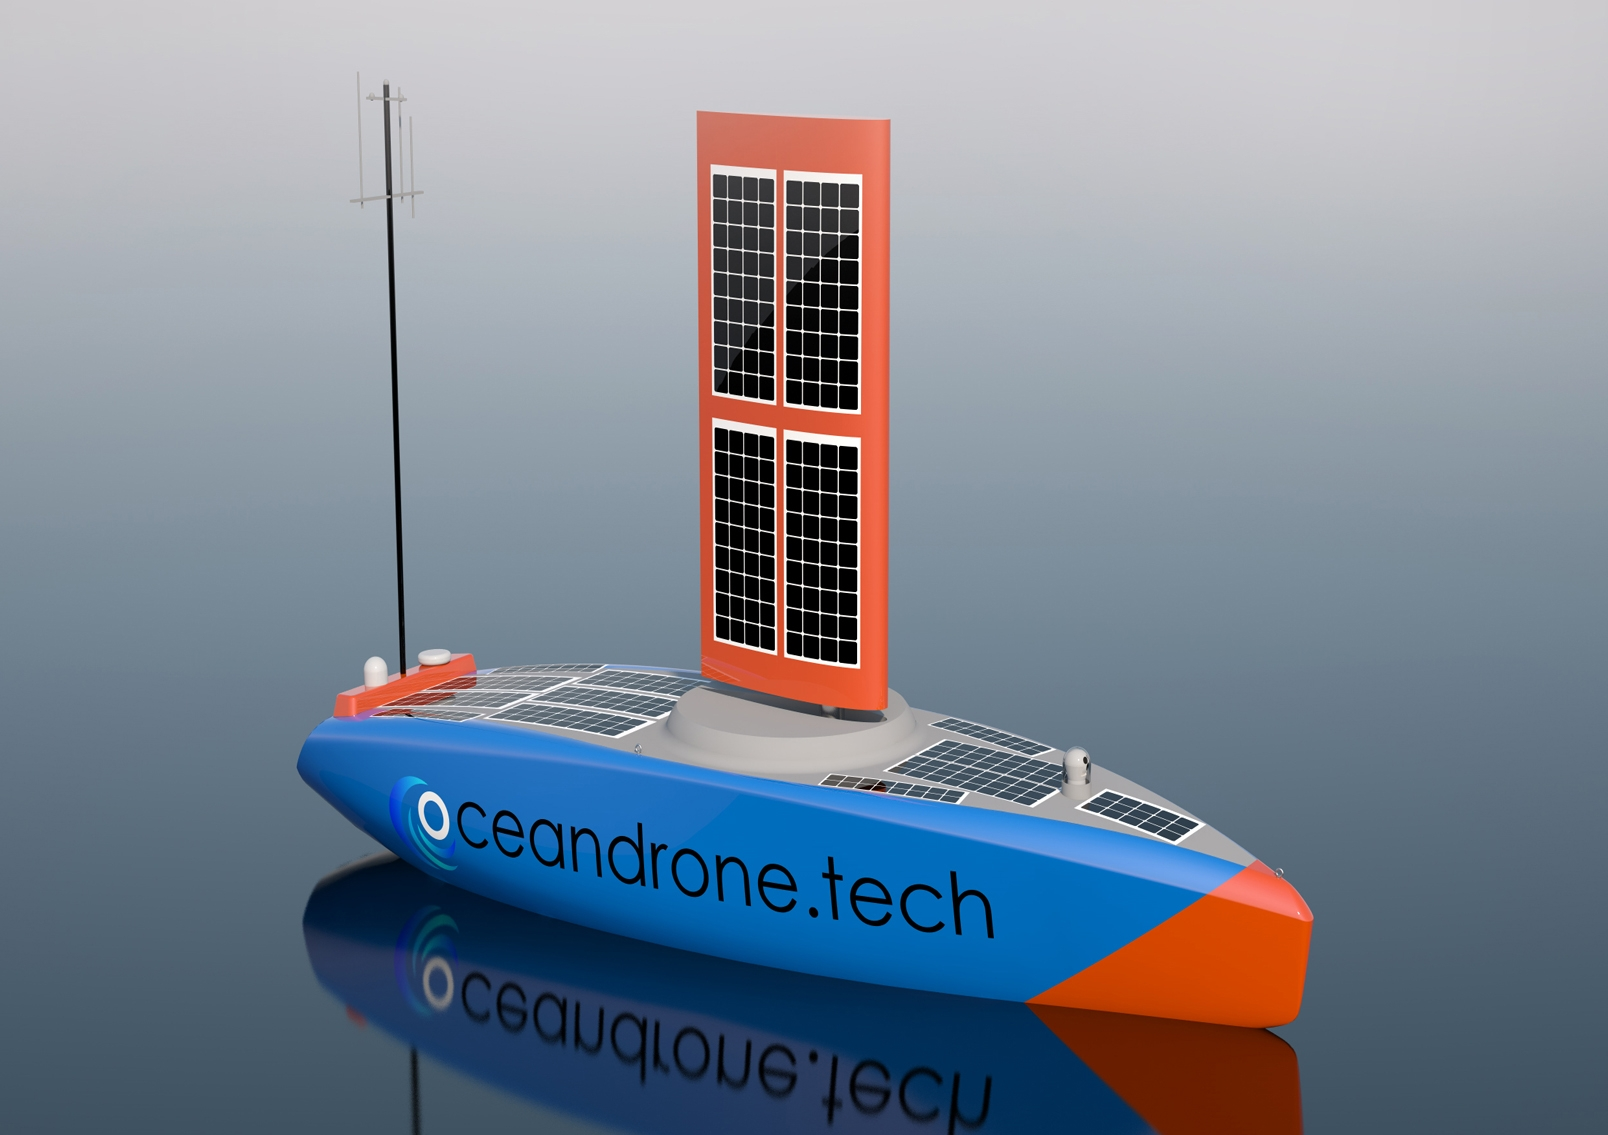 Introducing Oceandrone, the eco-robotic sailing craft that reduces operational costs